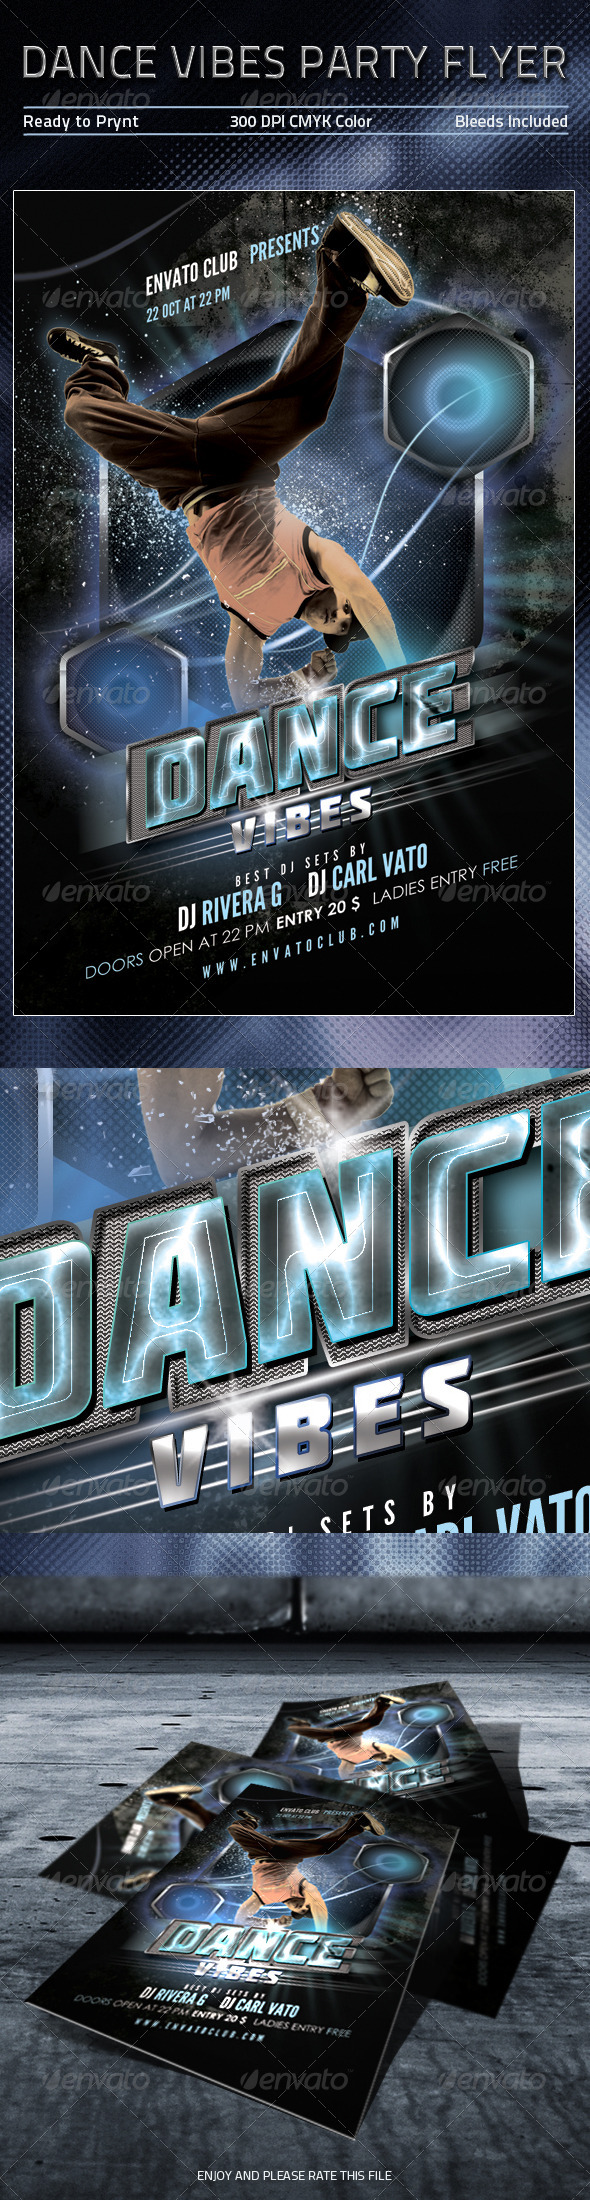 GraphicRiver Dance Vibes Party Flyer 5471046